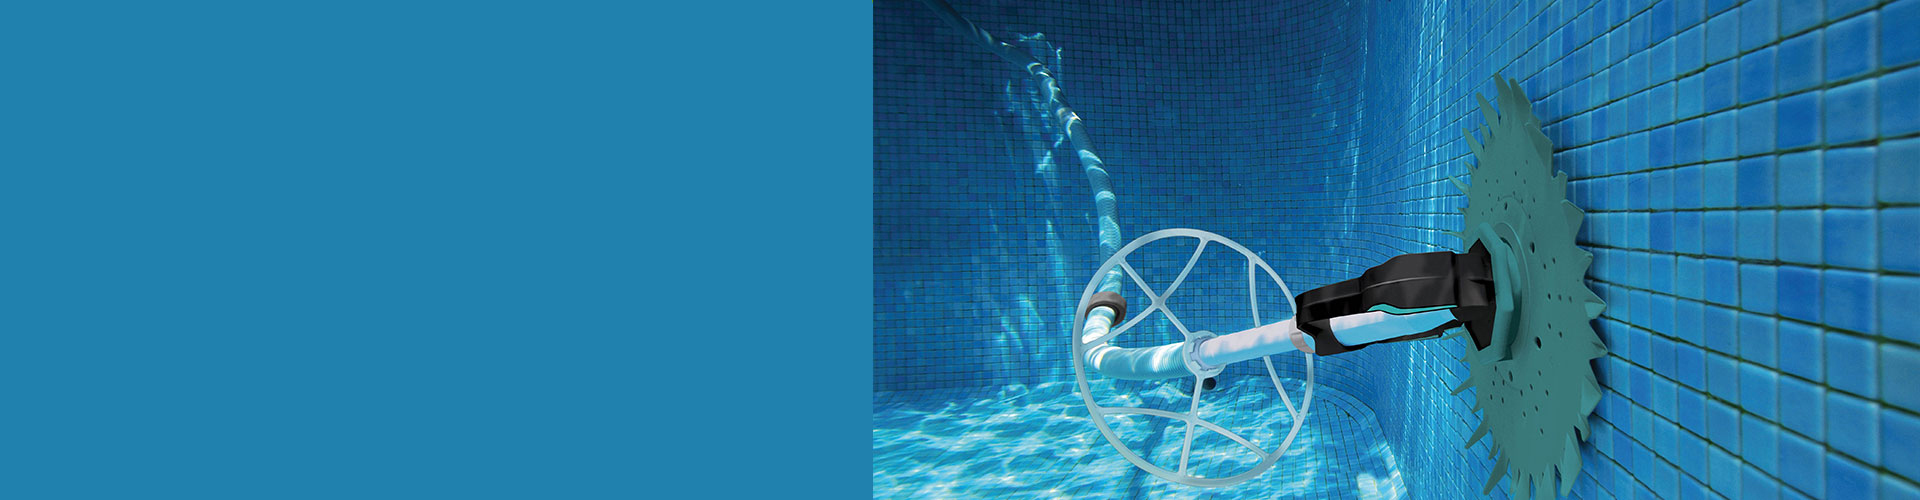 Jacuzzi Pool Pump Seal Kit Swimming Pool Supply Pumps Skimmer Automatic Pool Cleaner